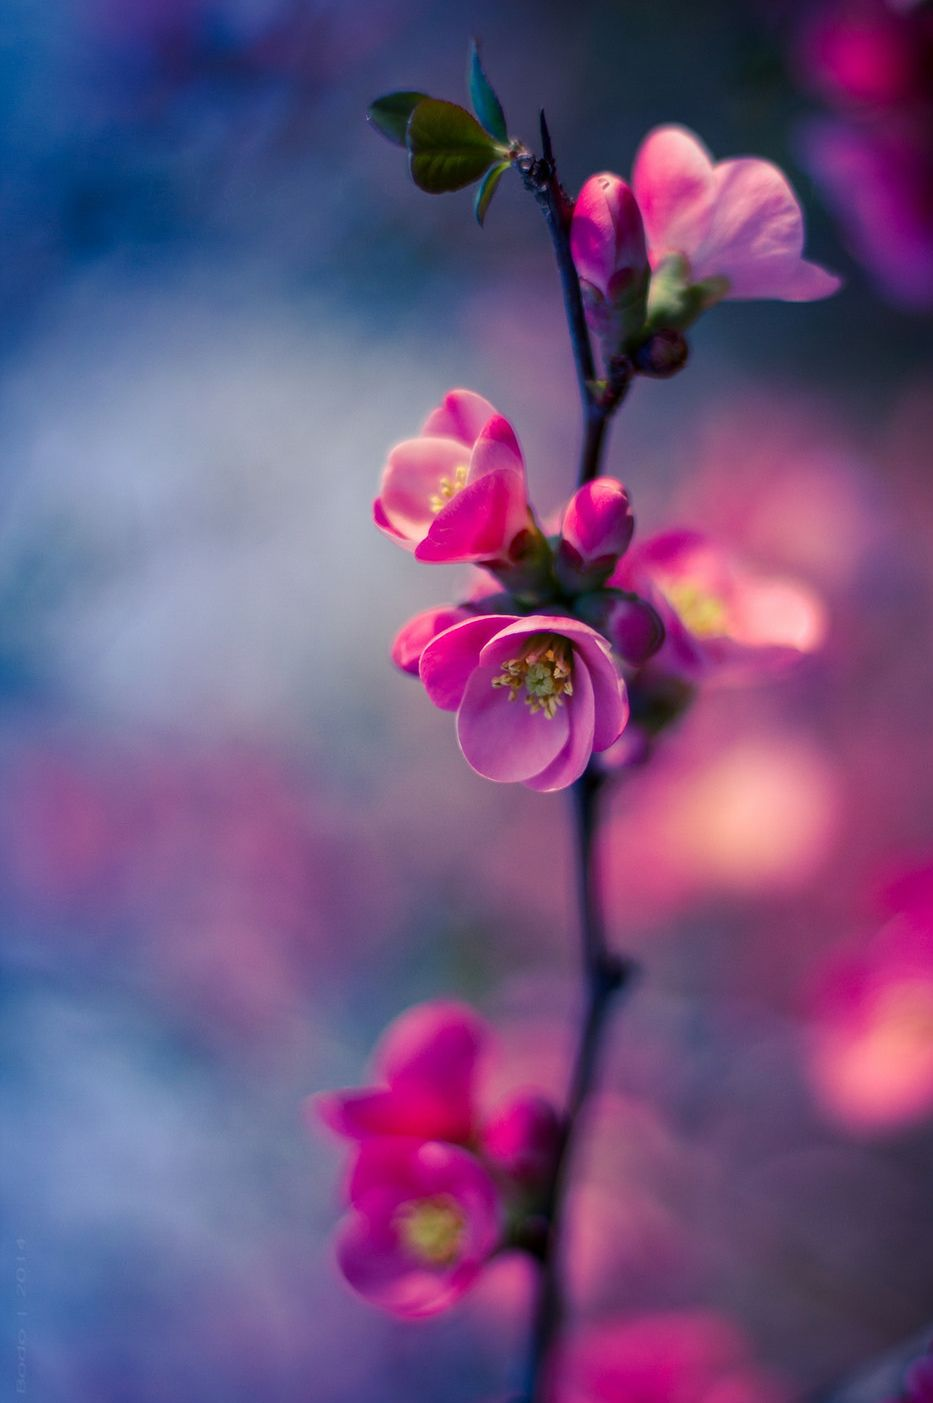 Just Breathe Beautiful Flowers Wallpapers Flowers Photography Flowers Nature